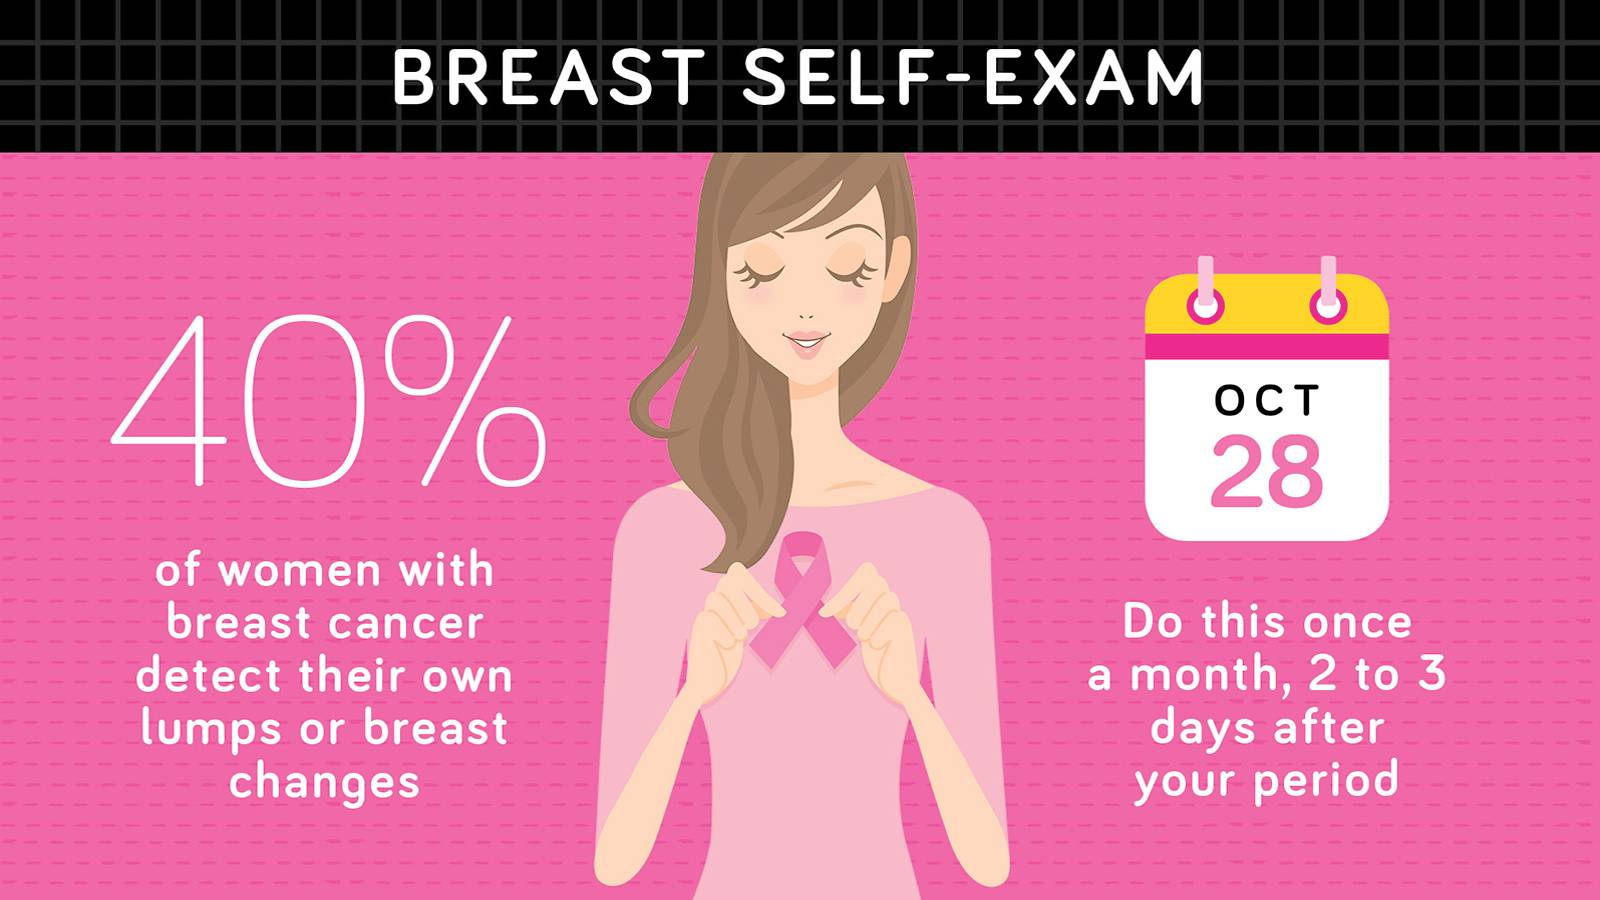 Parents-How-to-do-a-Breast-Self-Exam-2